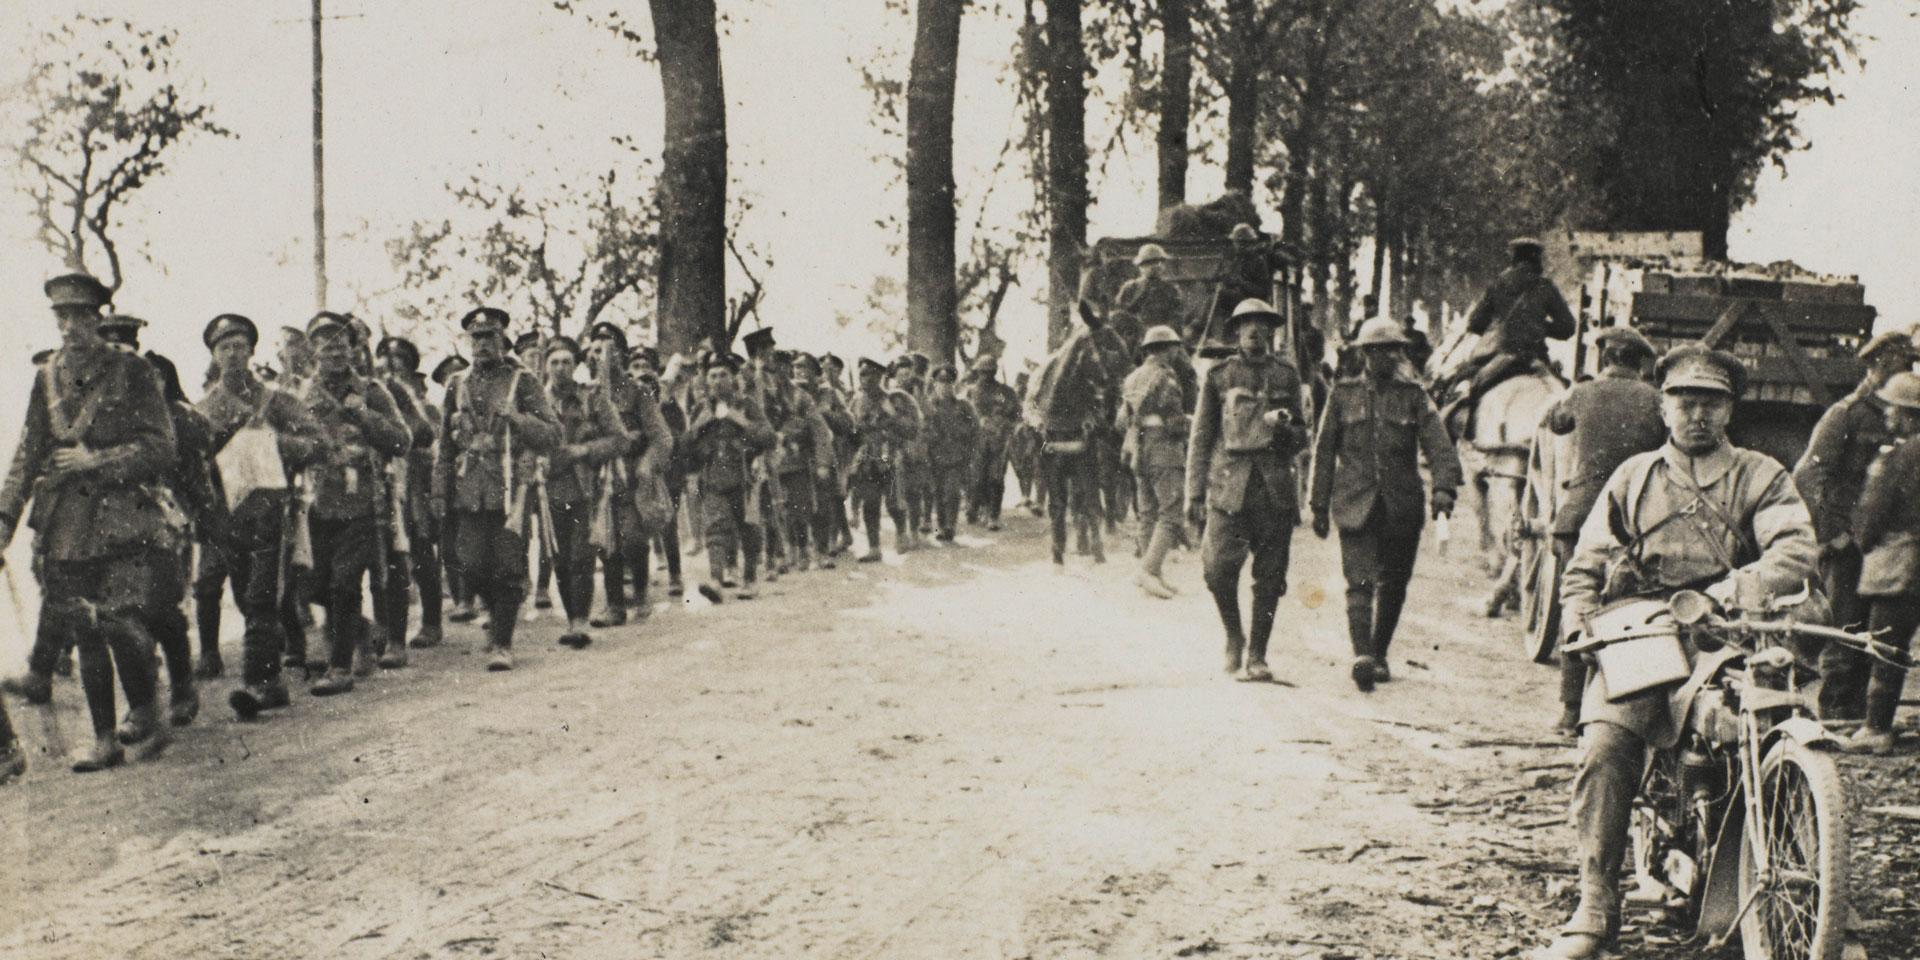 Troops of the Manchester Regiment marching to the front line, July 1918